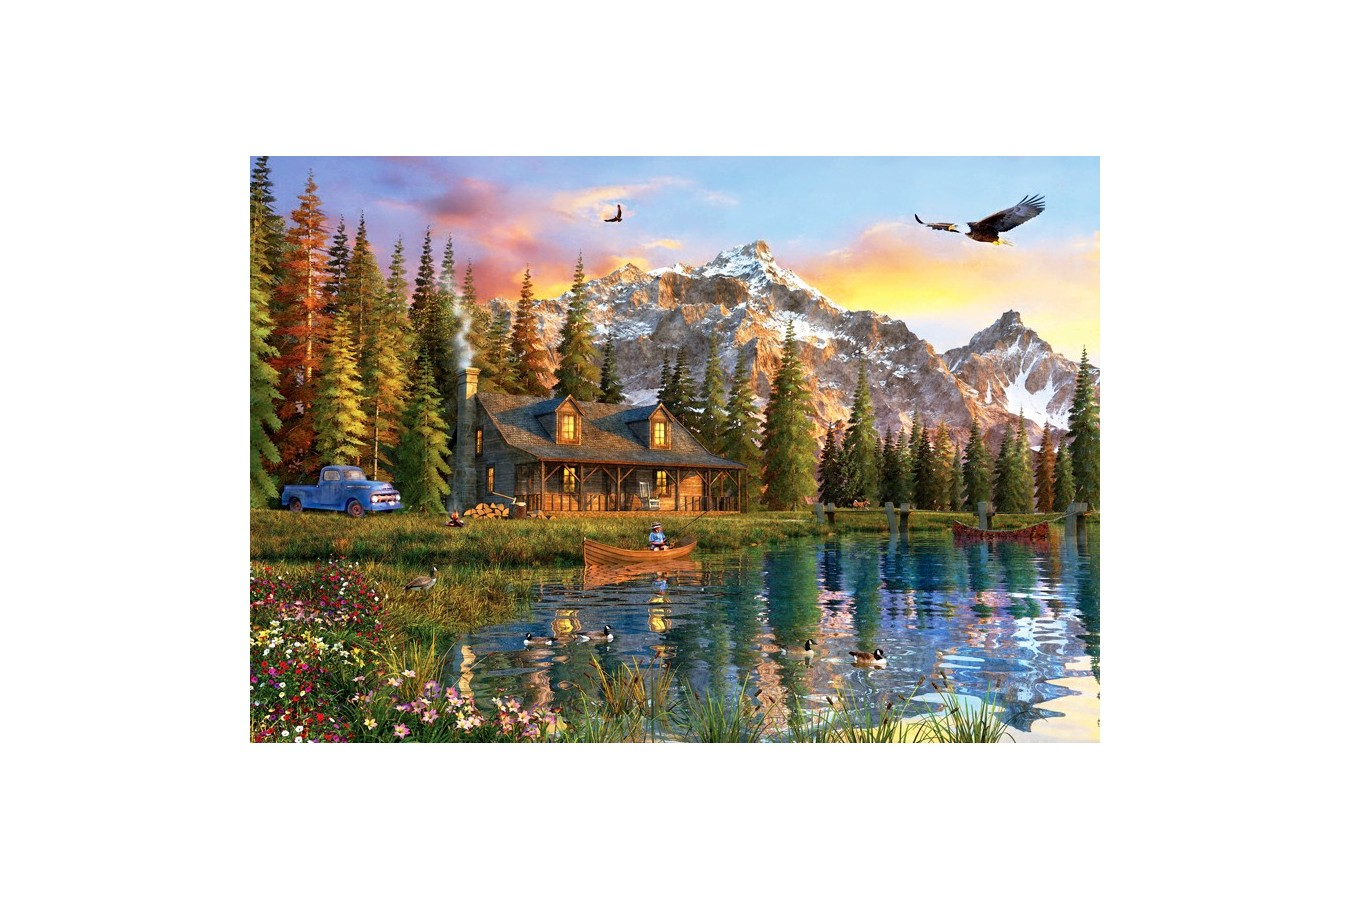 Puzzle Anatolian - Oldlook Cabin, 2000 piese (3933)